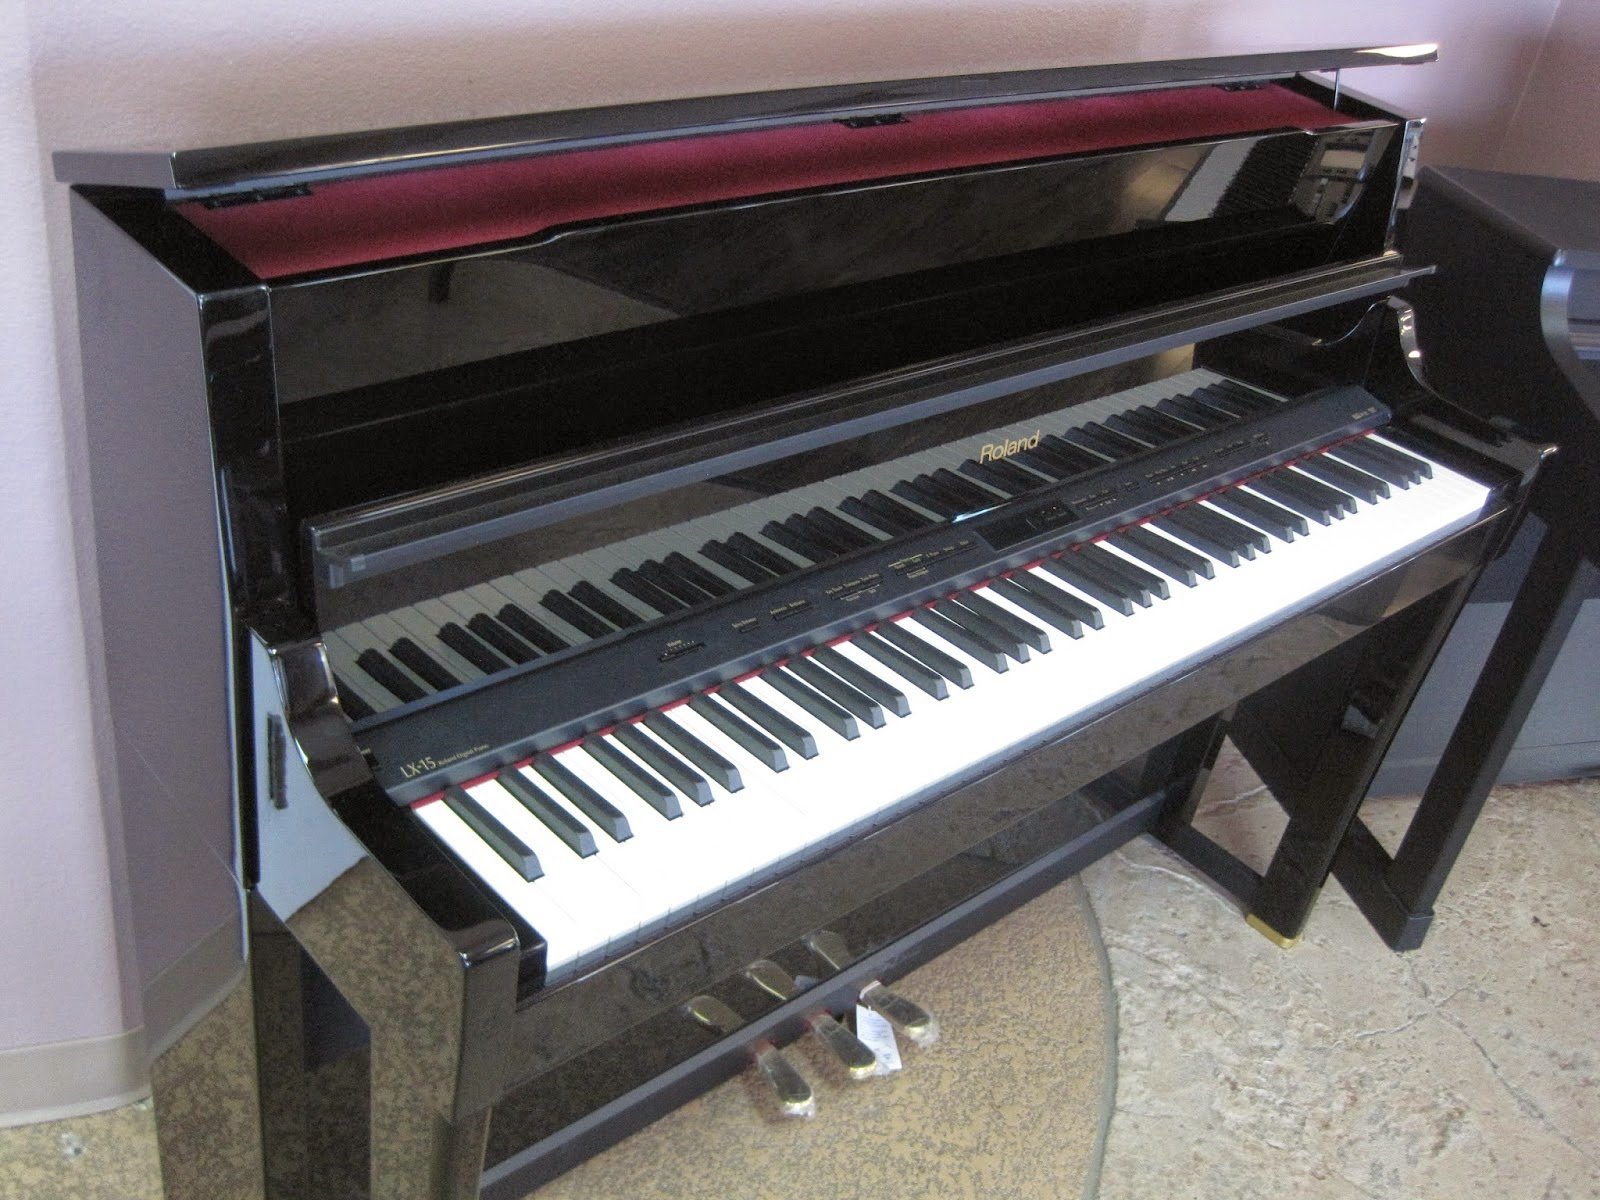 Az piano reviews 1 digital piano review site for Piano yamaha price list